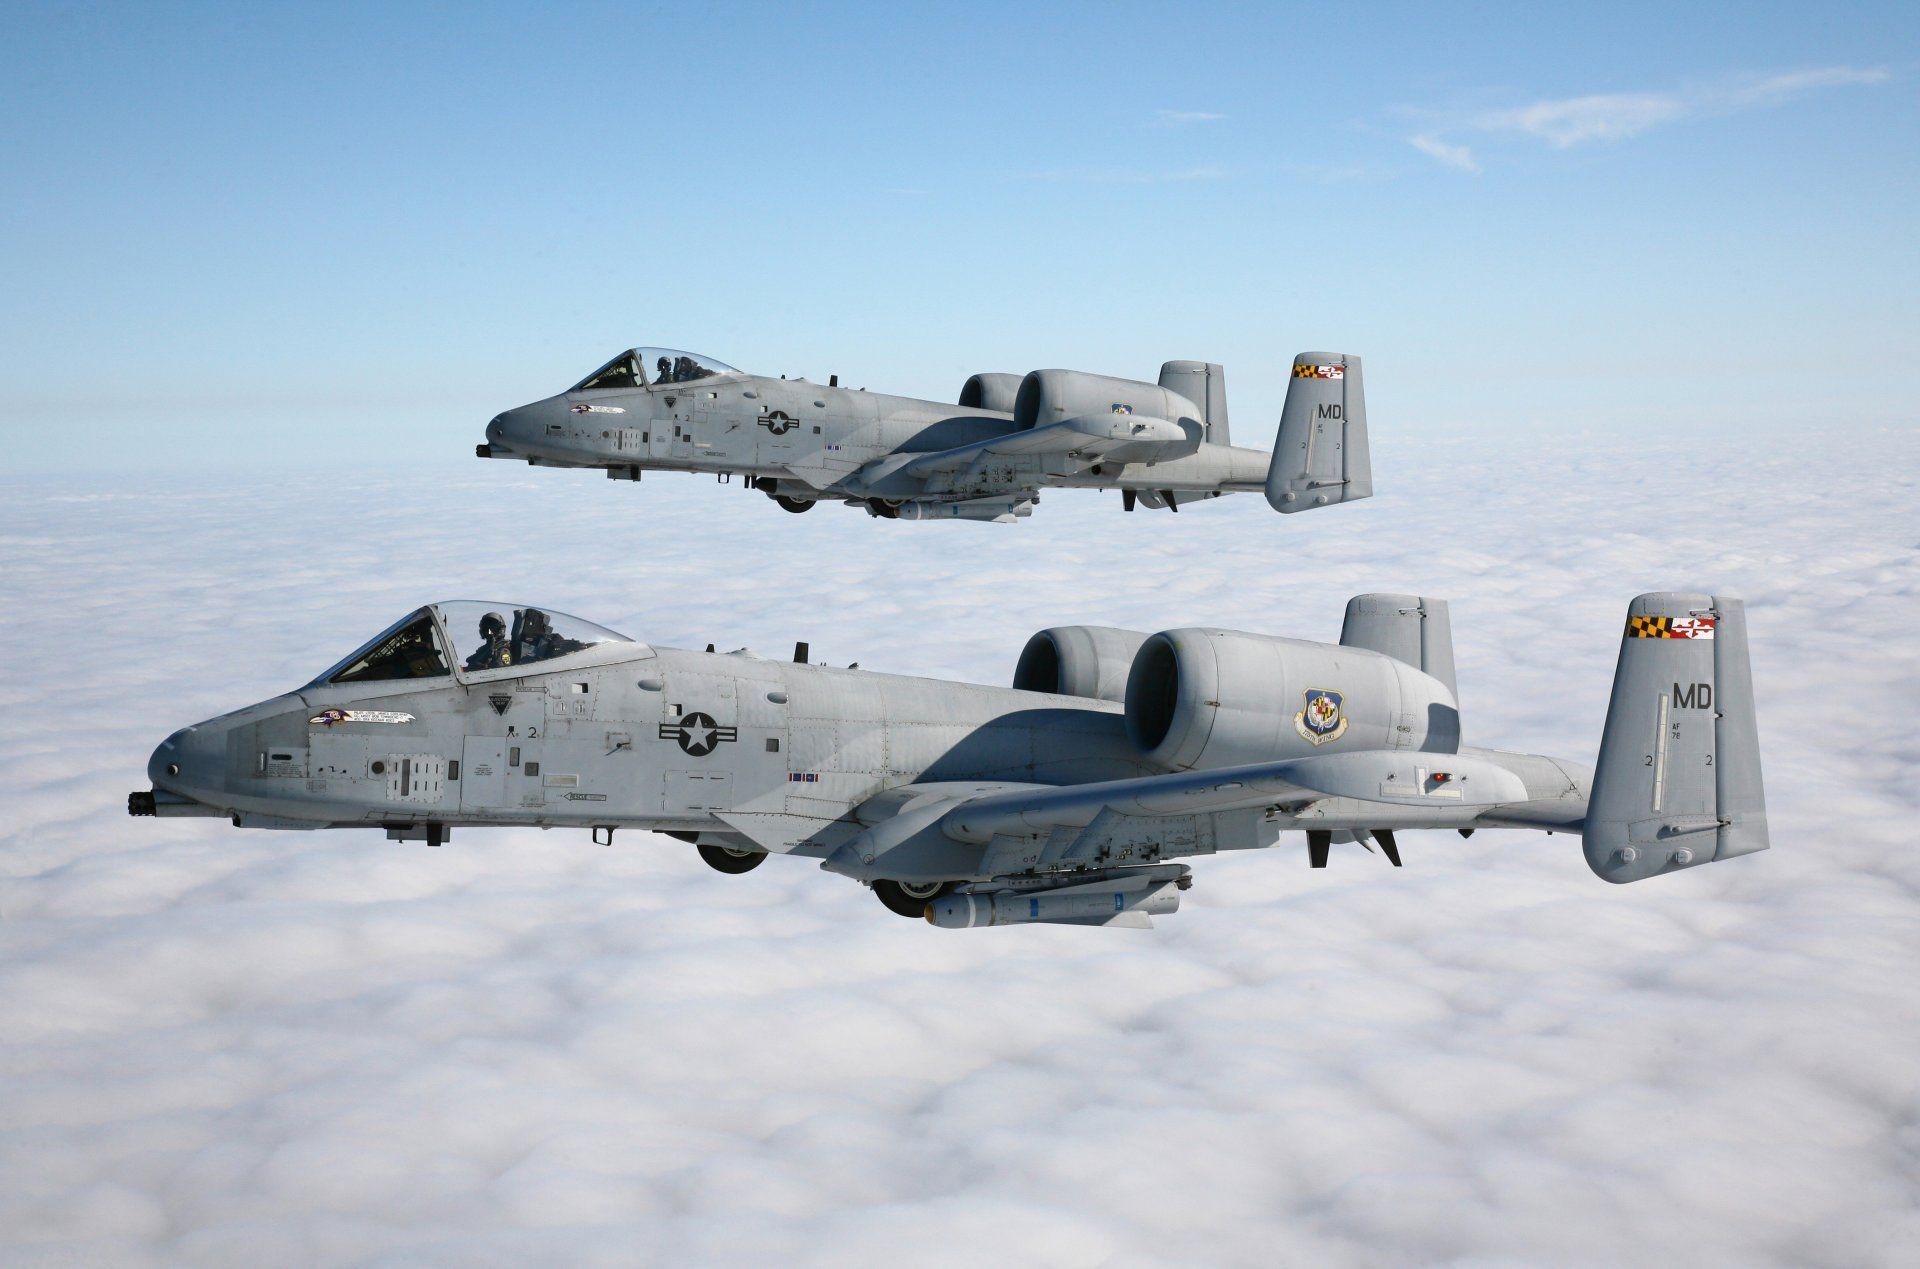 A 10 Thunderbolt Ii Stormtroopers The Pair Sky Clouds Hd Wallpaper For Computer Or Android Device Military Wallpaper Aircraft Fighter Jets